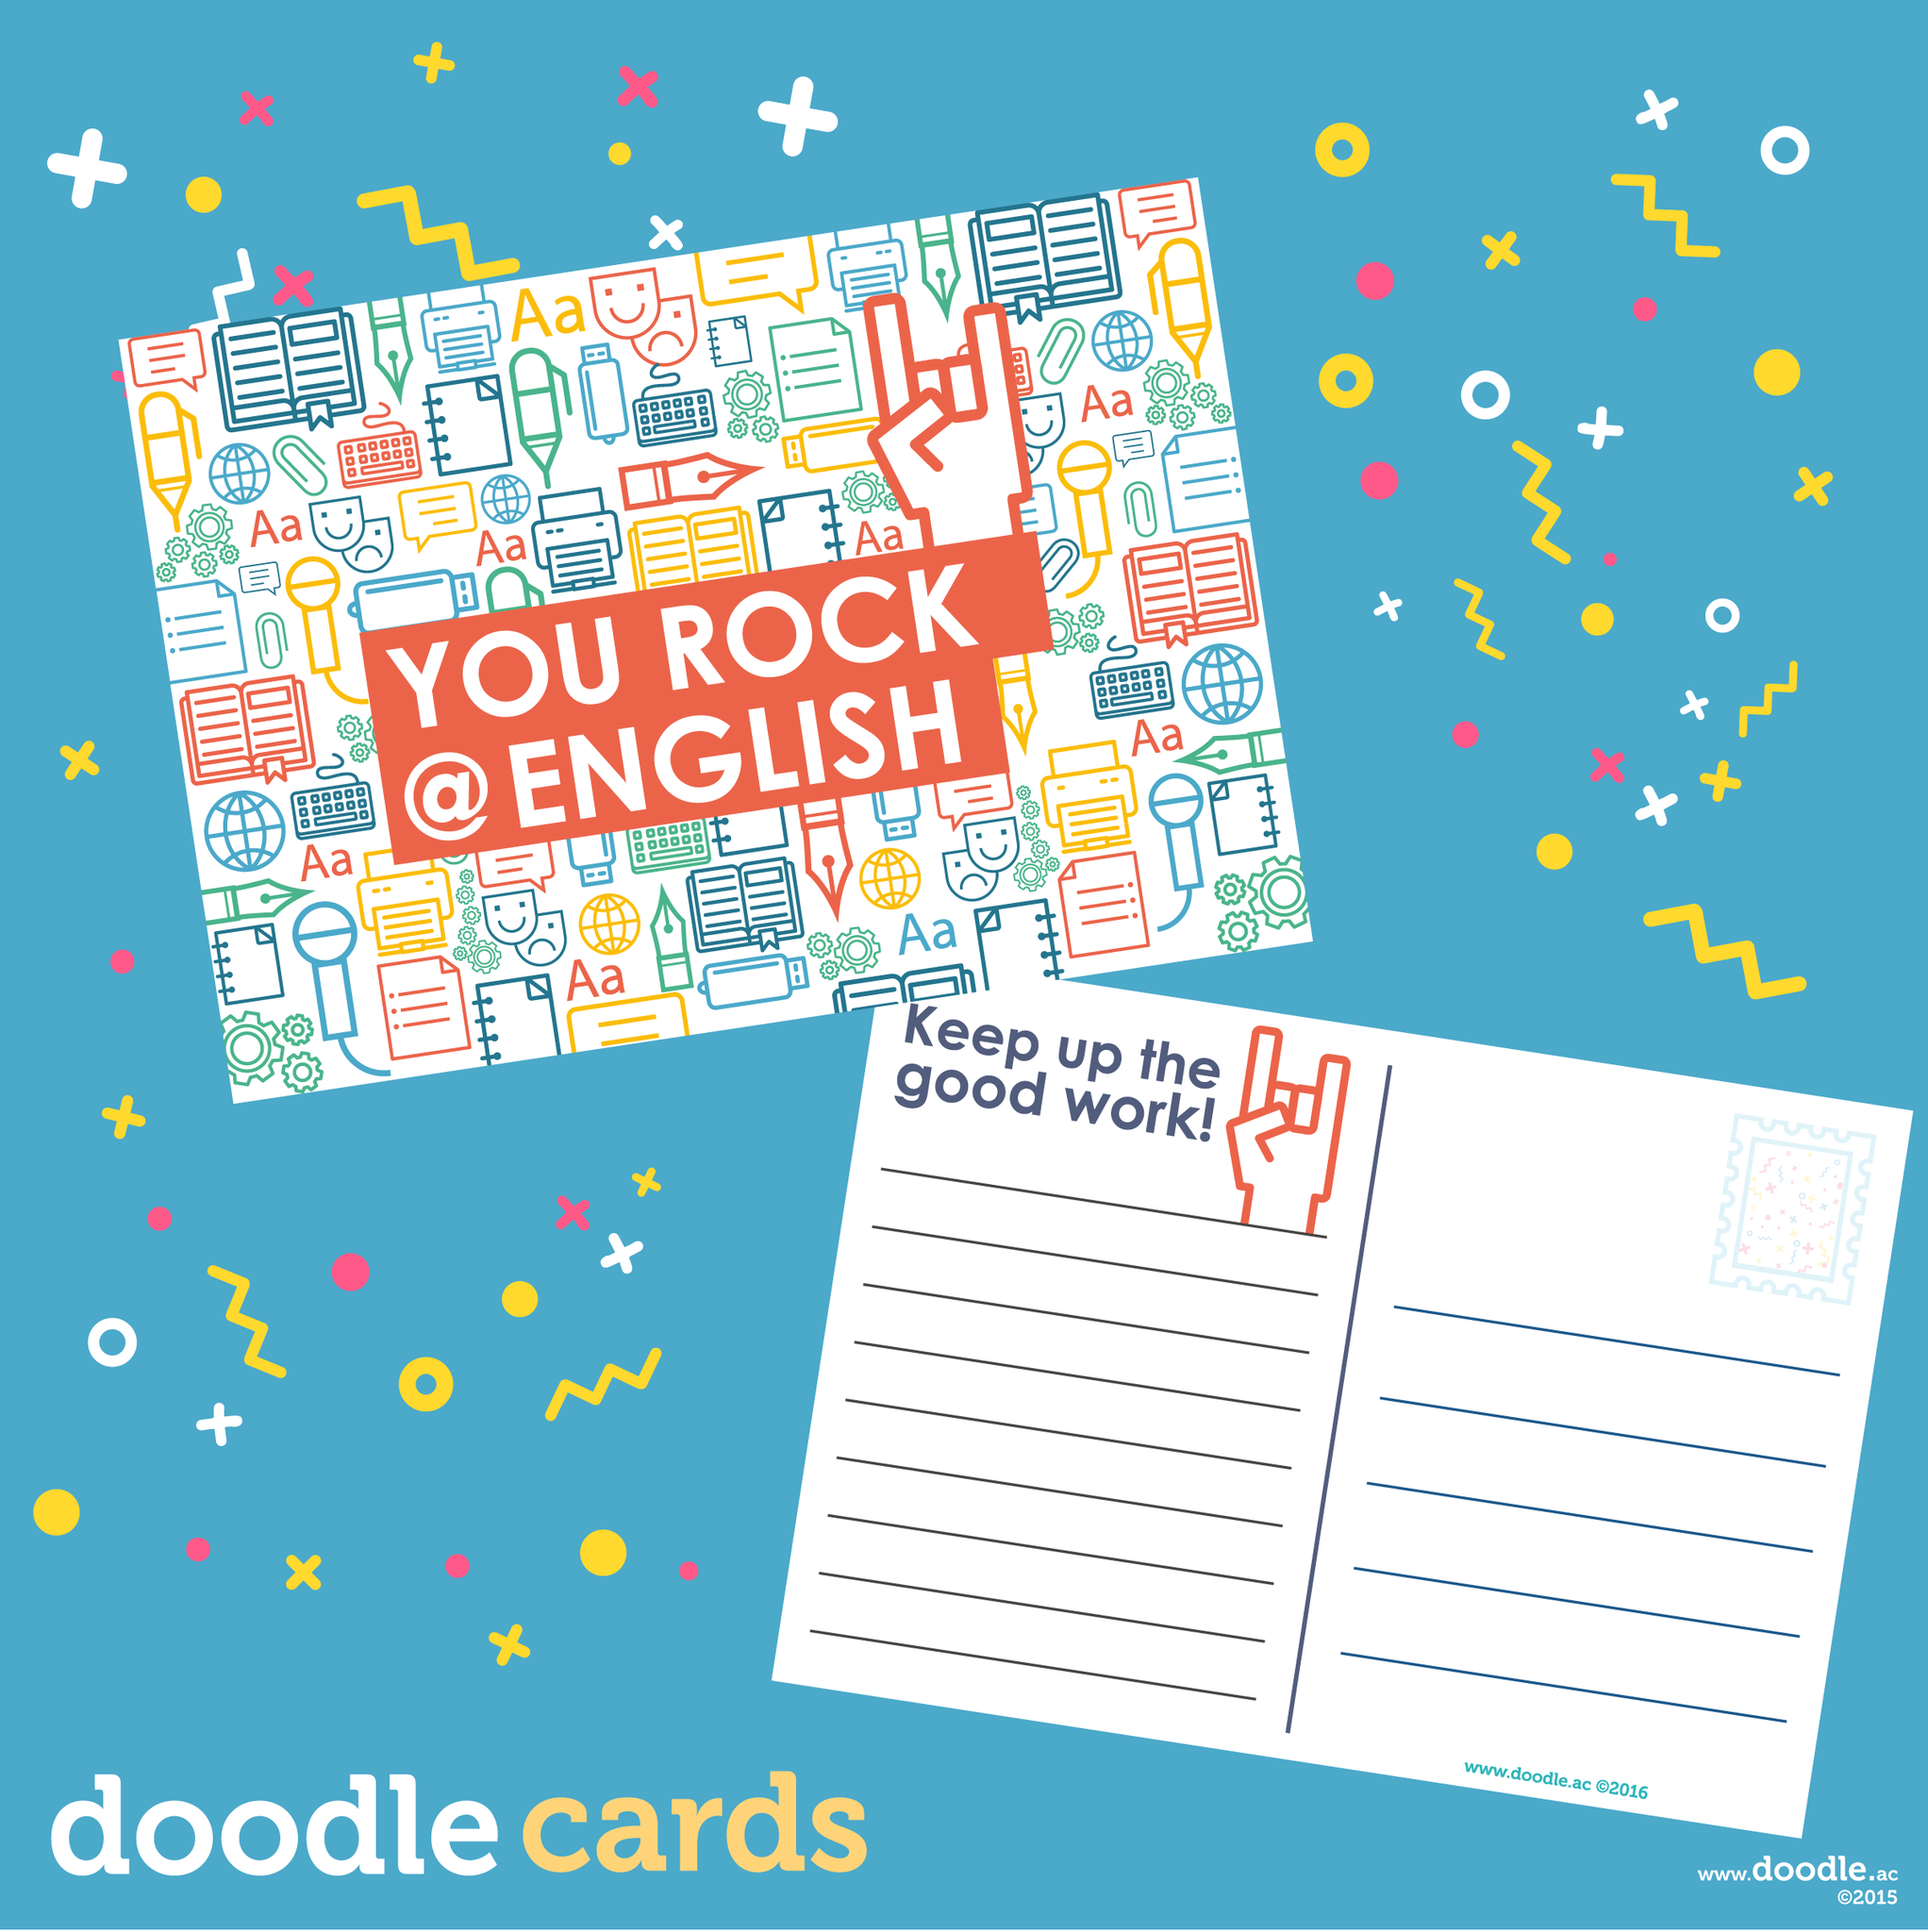 you rock doodle English cards - doodle education